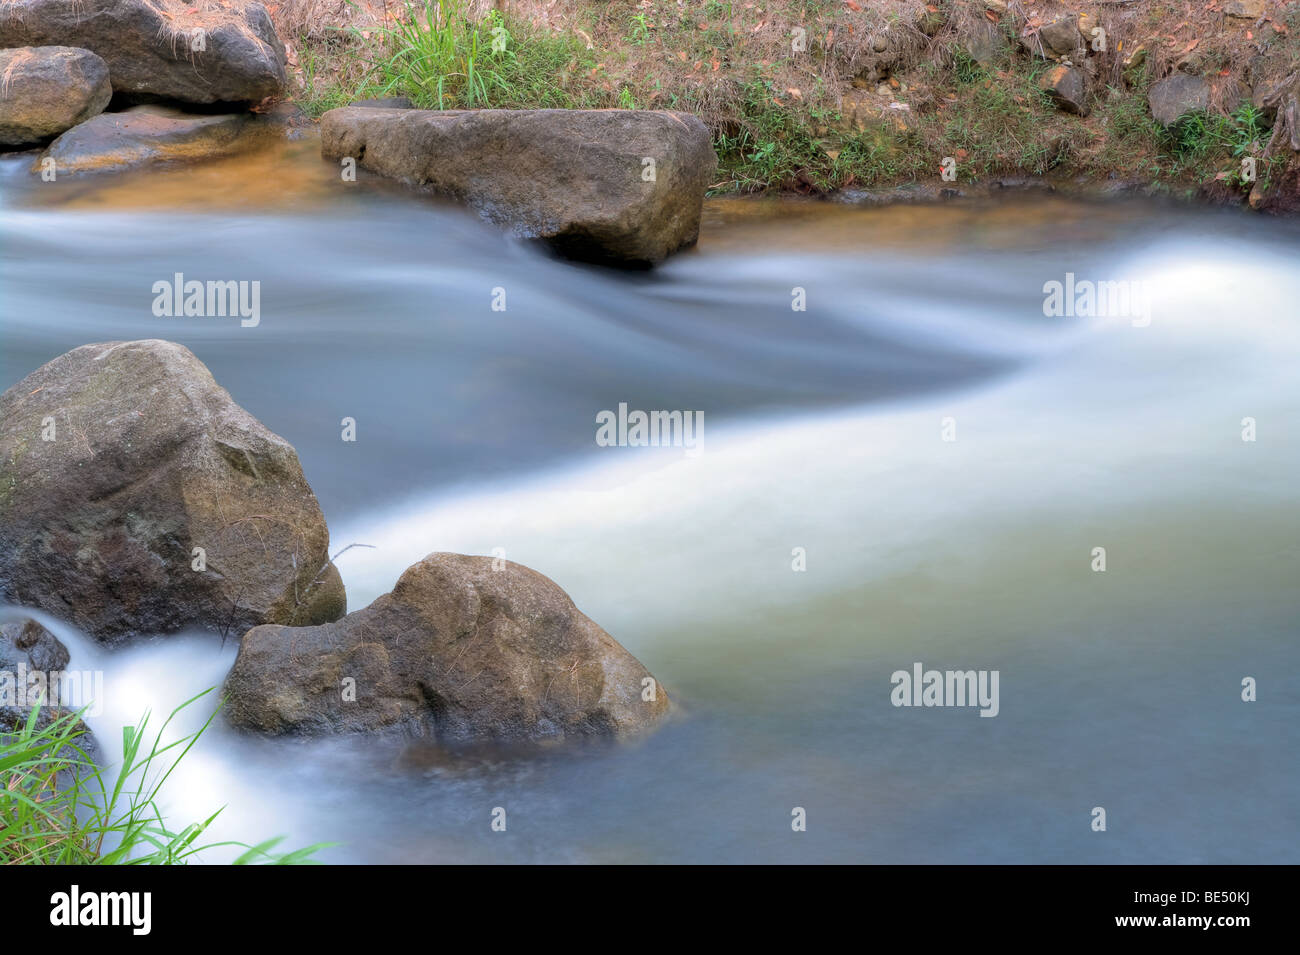 great image of water coming down the stream or river - Stock Image